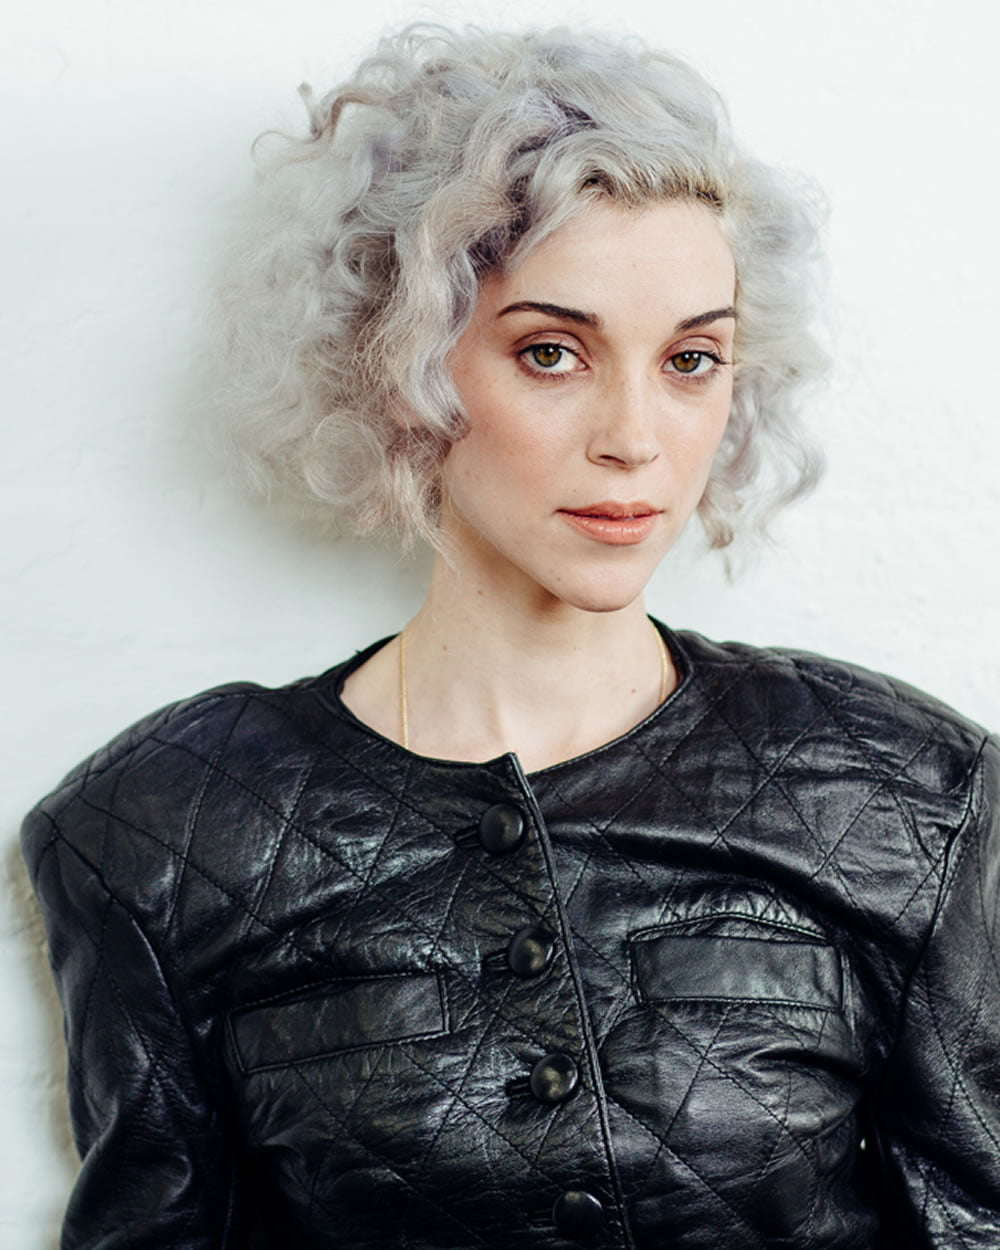 Gray Short Curly Hair Style 2019